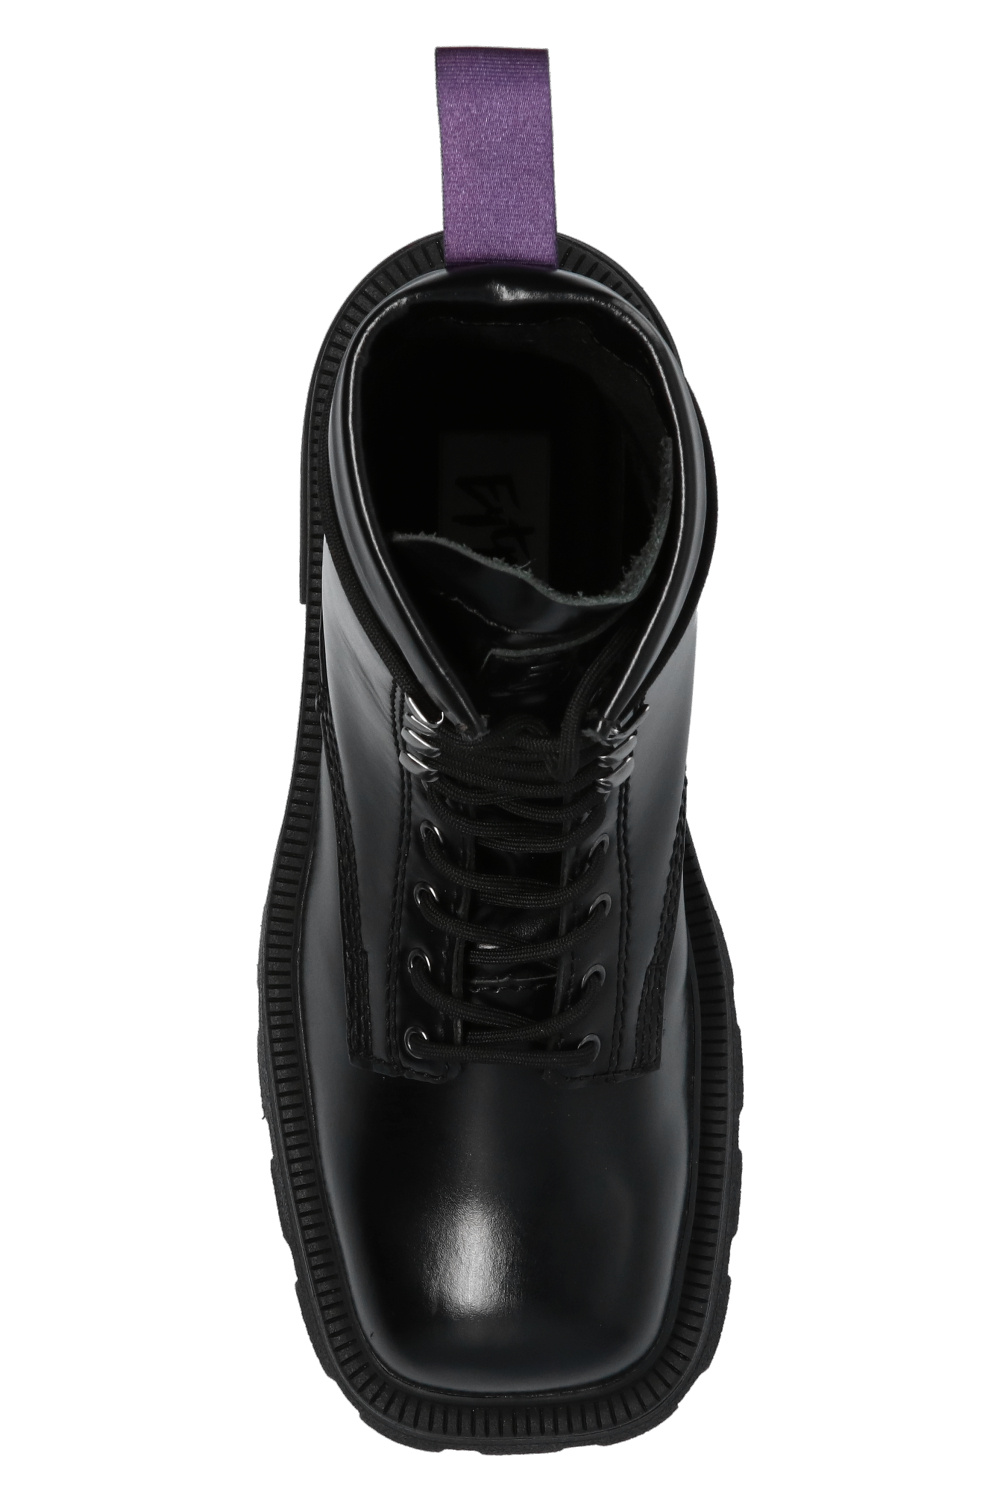 Eytys 'Michigan' leather ankle boots